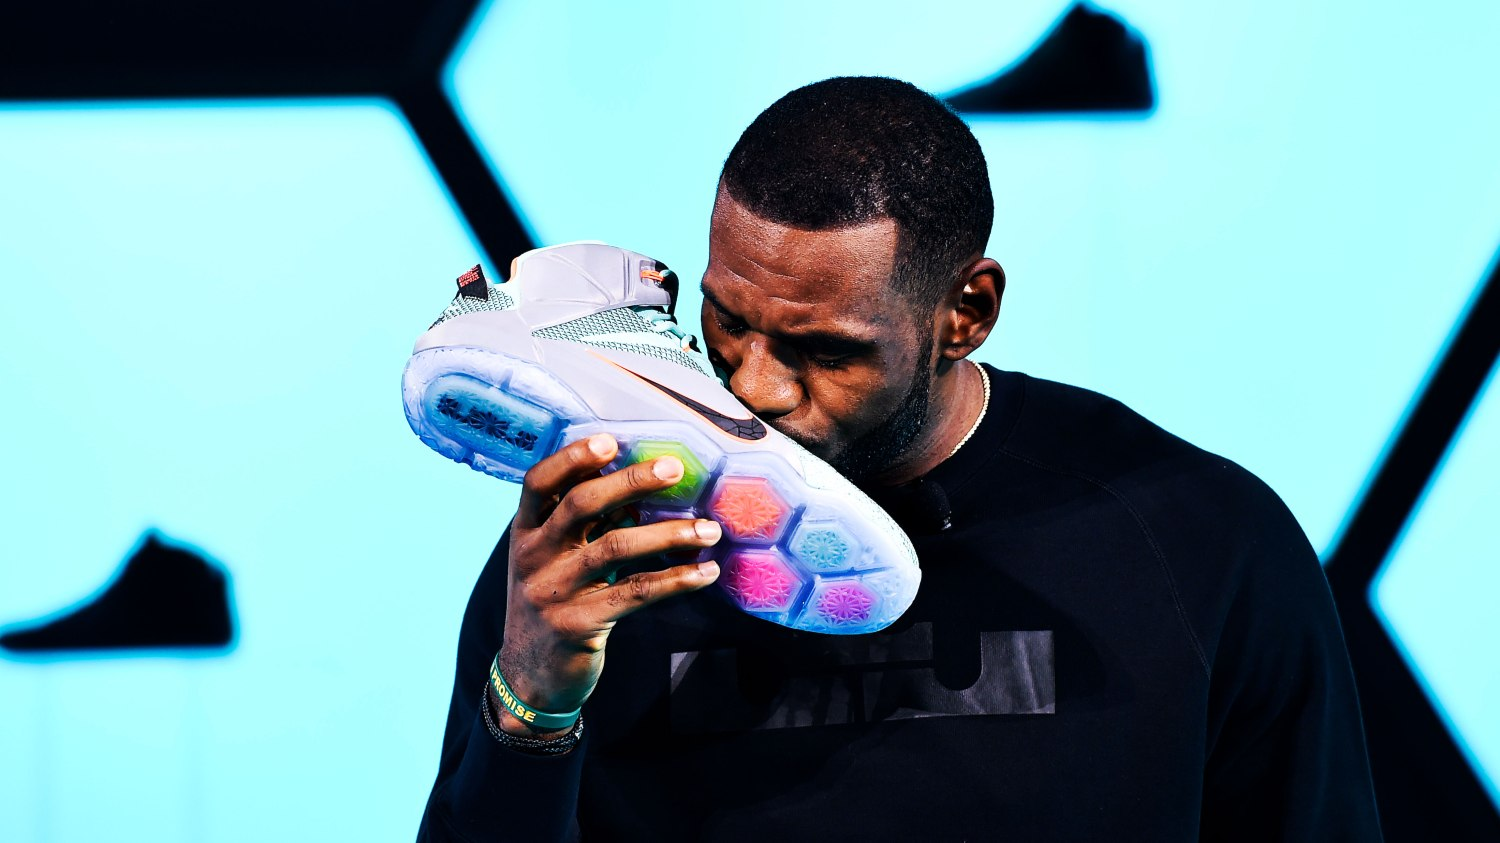 buy online 67f70 0cca9 Fifteen years ago, Reebok and Adidas wanted him badly — so how exactly did  LeBron James end up with Nike